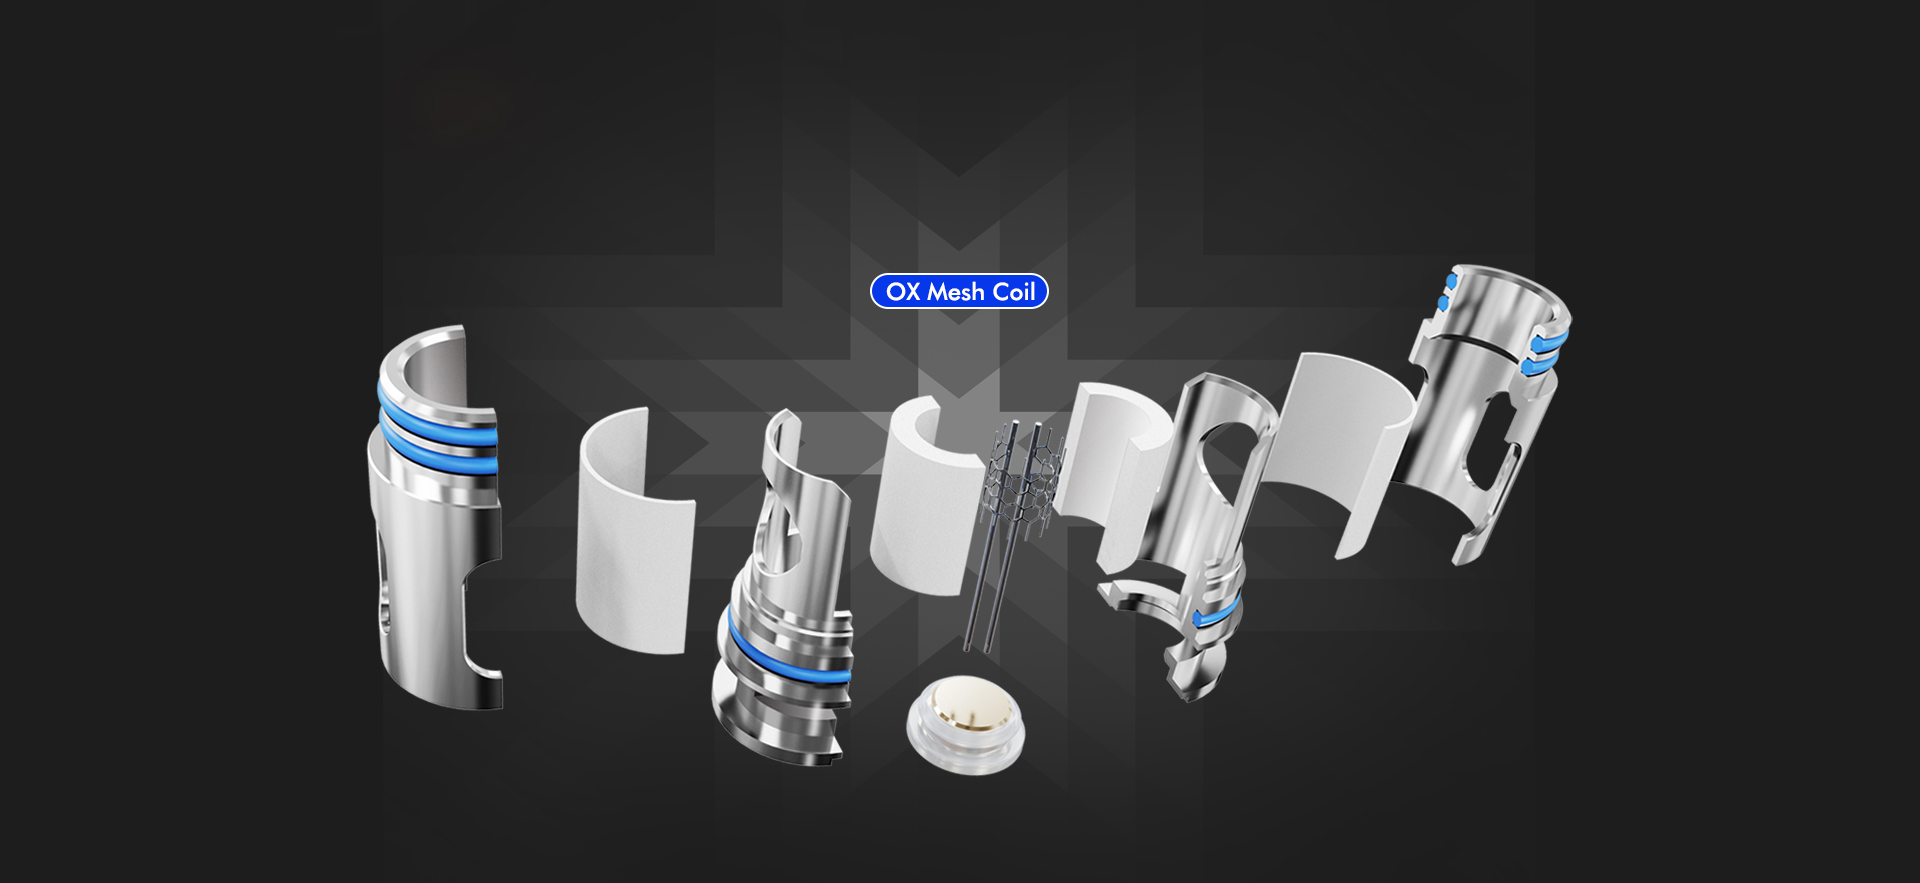 Freemax OX Series Coil Structure - OX Mesh Coil